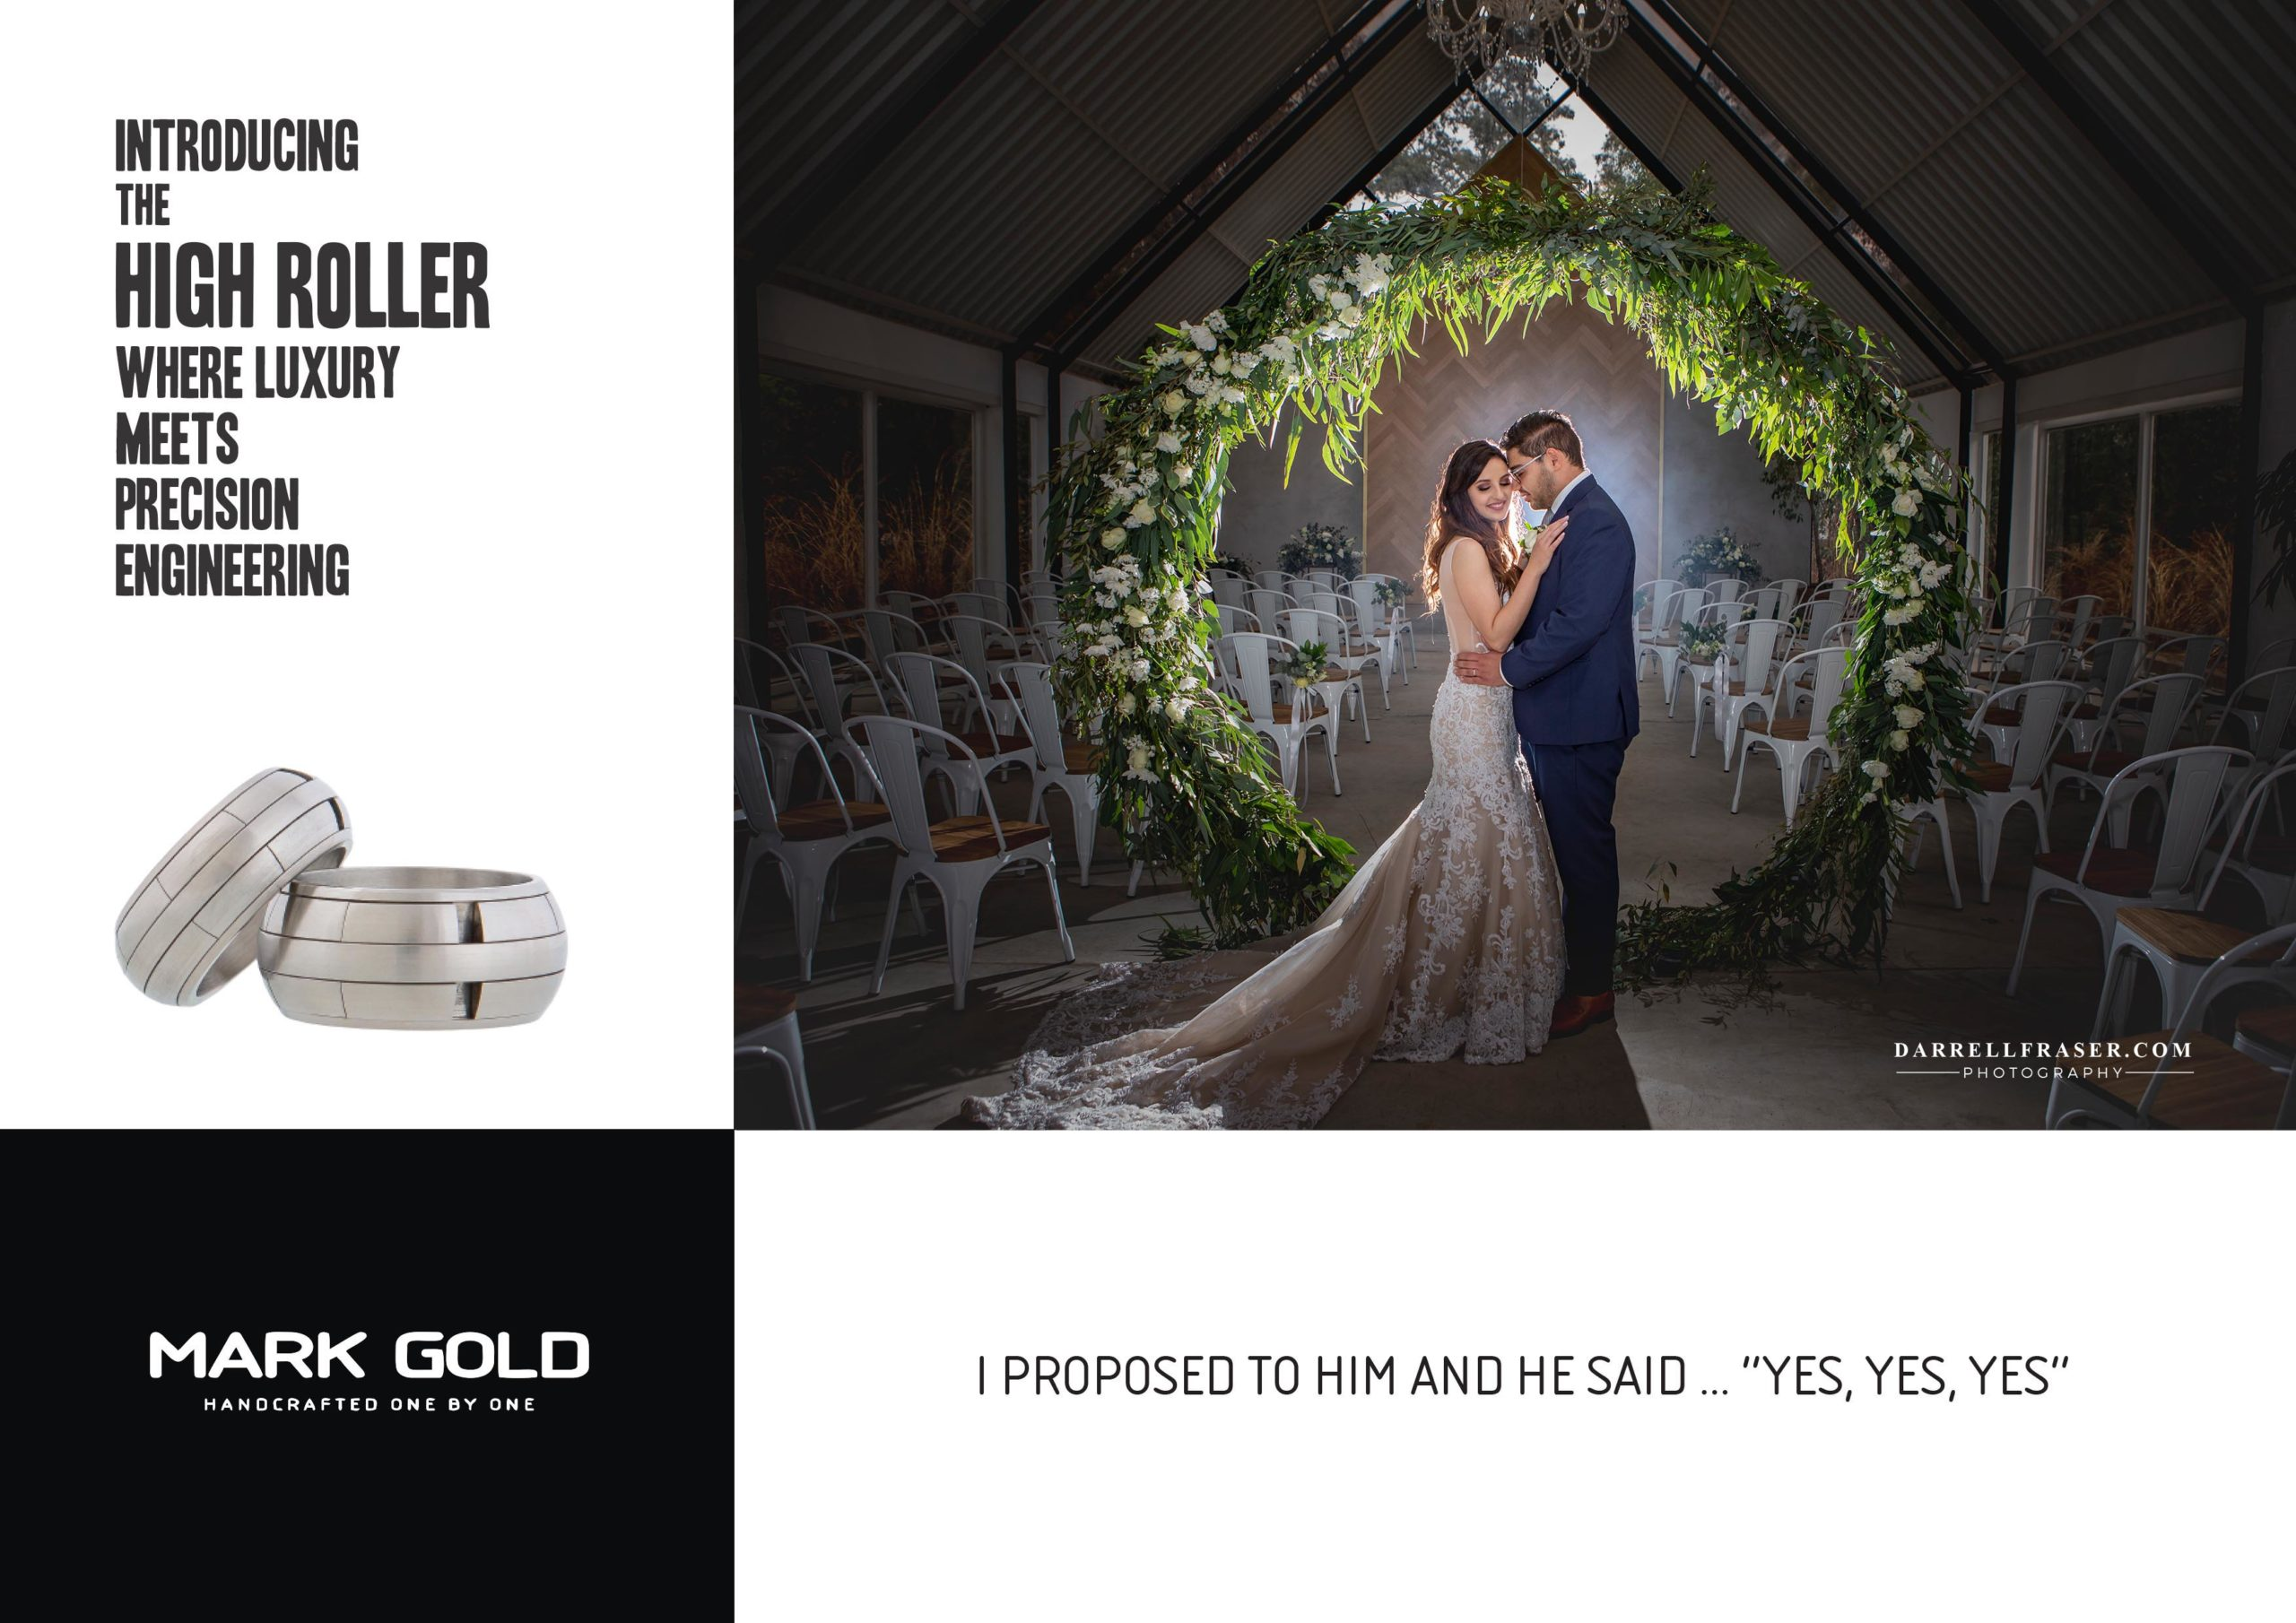 MARK GOLD THE HIGH ROLLER 2020 COLLABORATION WITH DARRELL FRASER WEDDING PHOTOGRAPHER